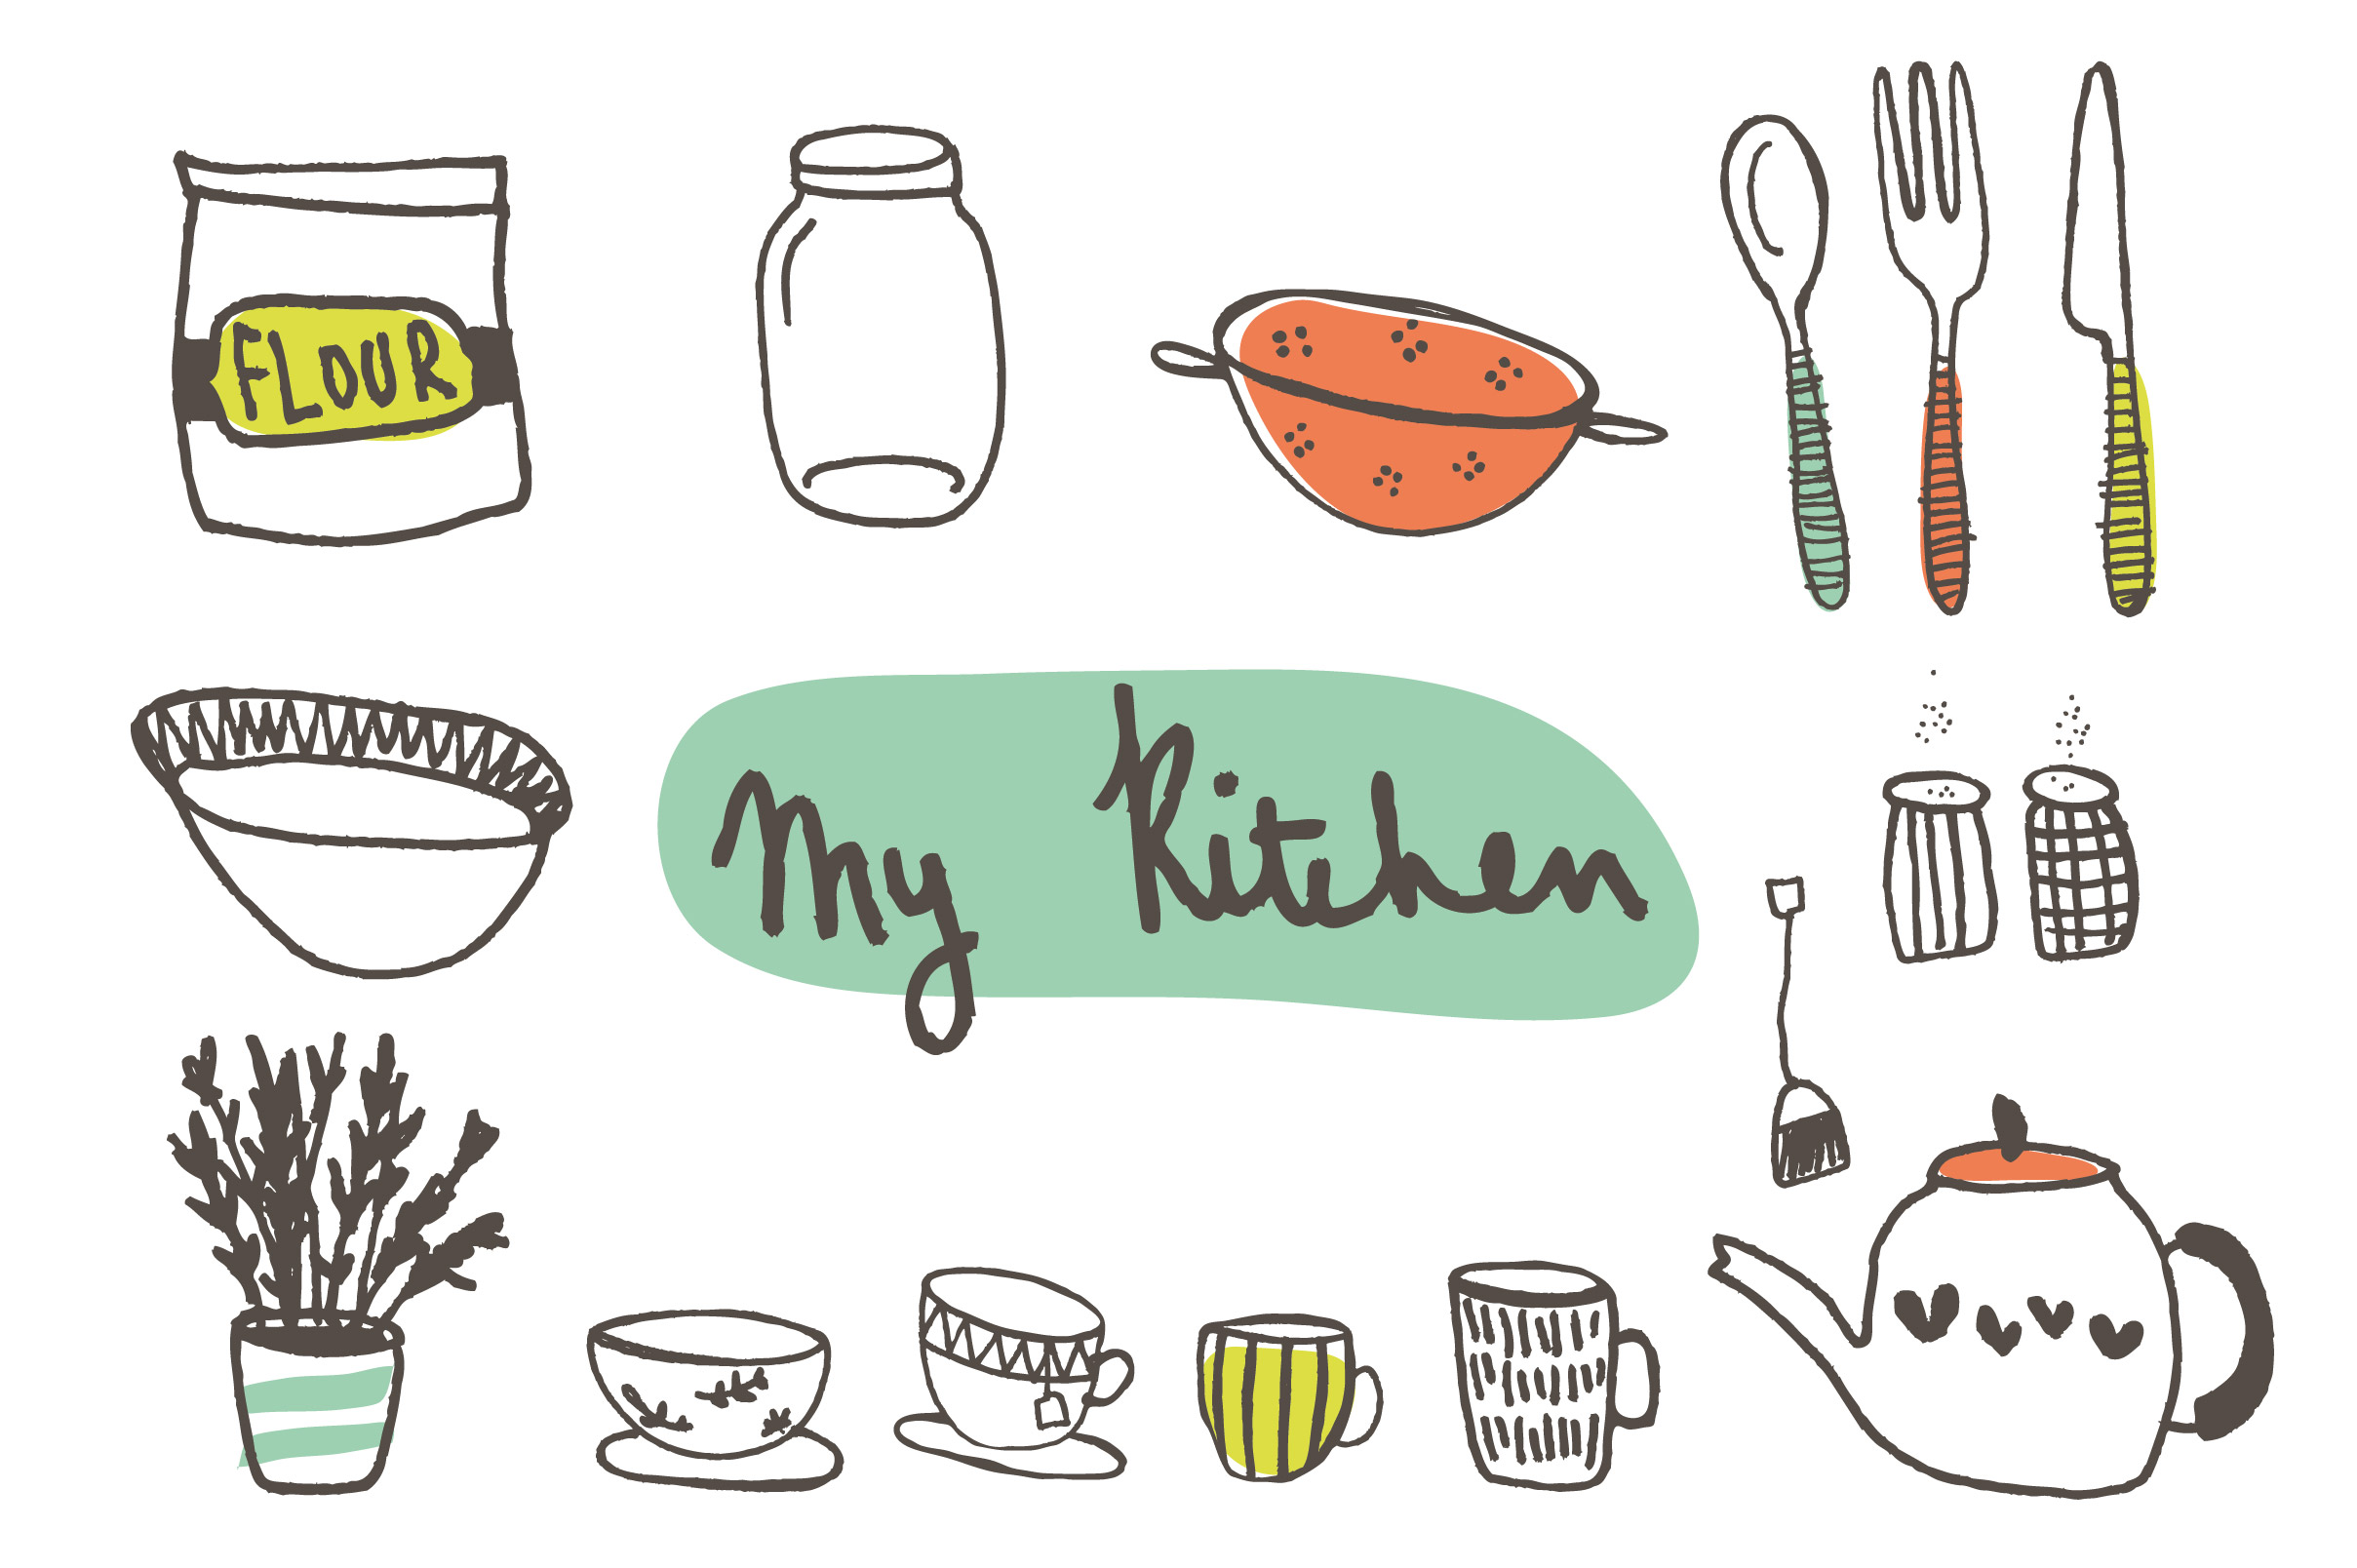 Cooking Utensils Drawing For Kids : Hand Drawn Kitchen Clip Art ~ Illustrations on Creative Market